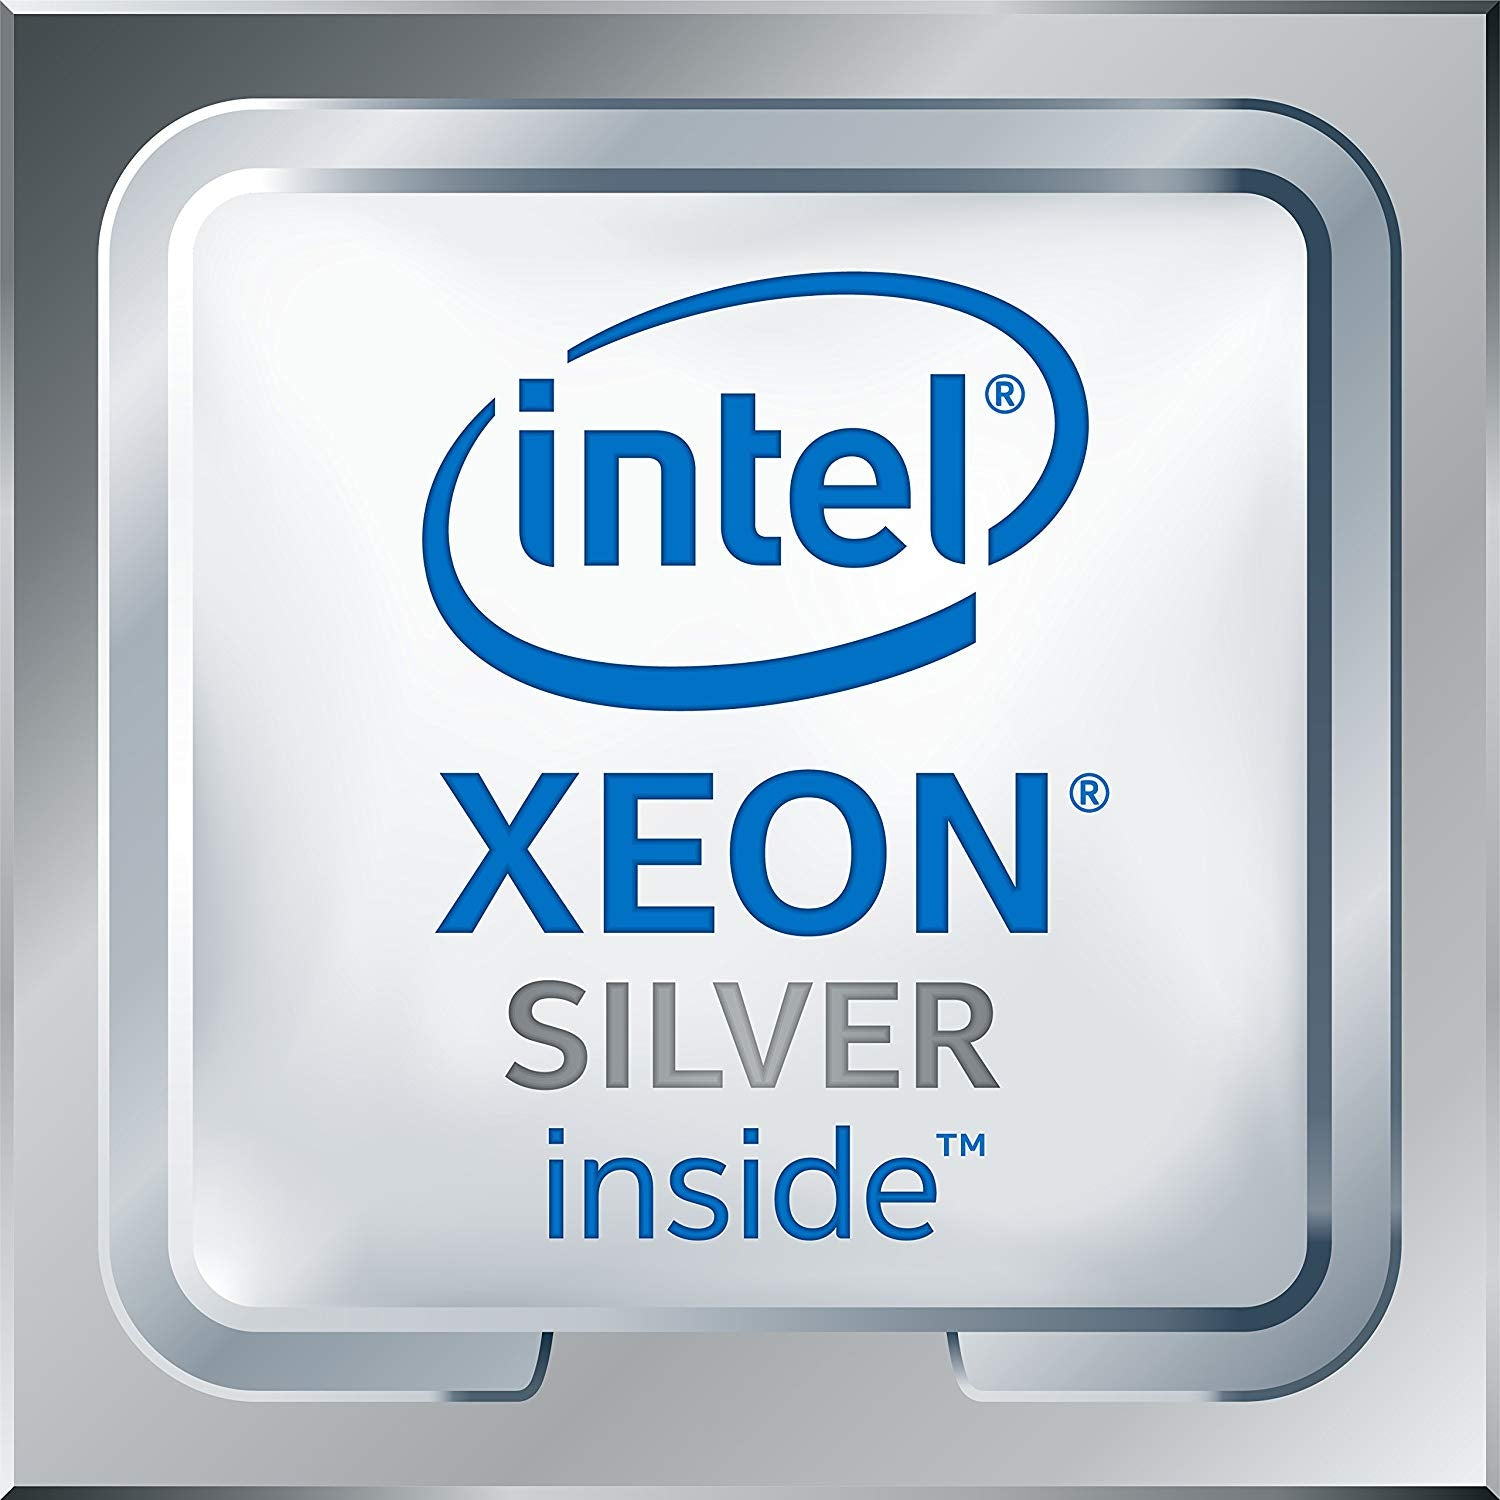 Intel Xeon Silver 4216 16-Core 2.10GHz 22MB Cache Socket FCLGA3647 (SRFBB) Server Processor